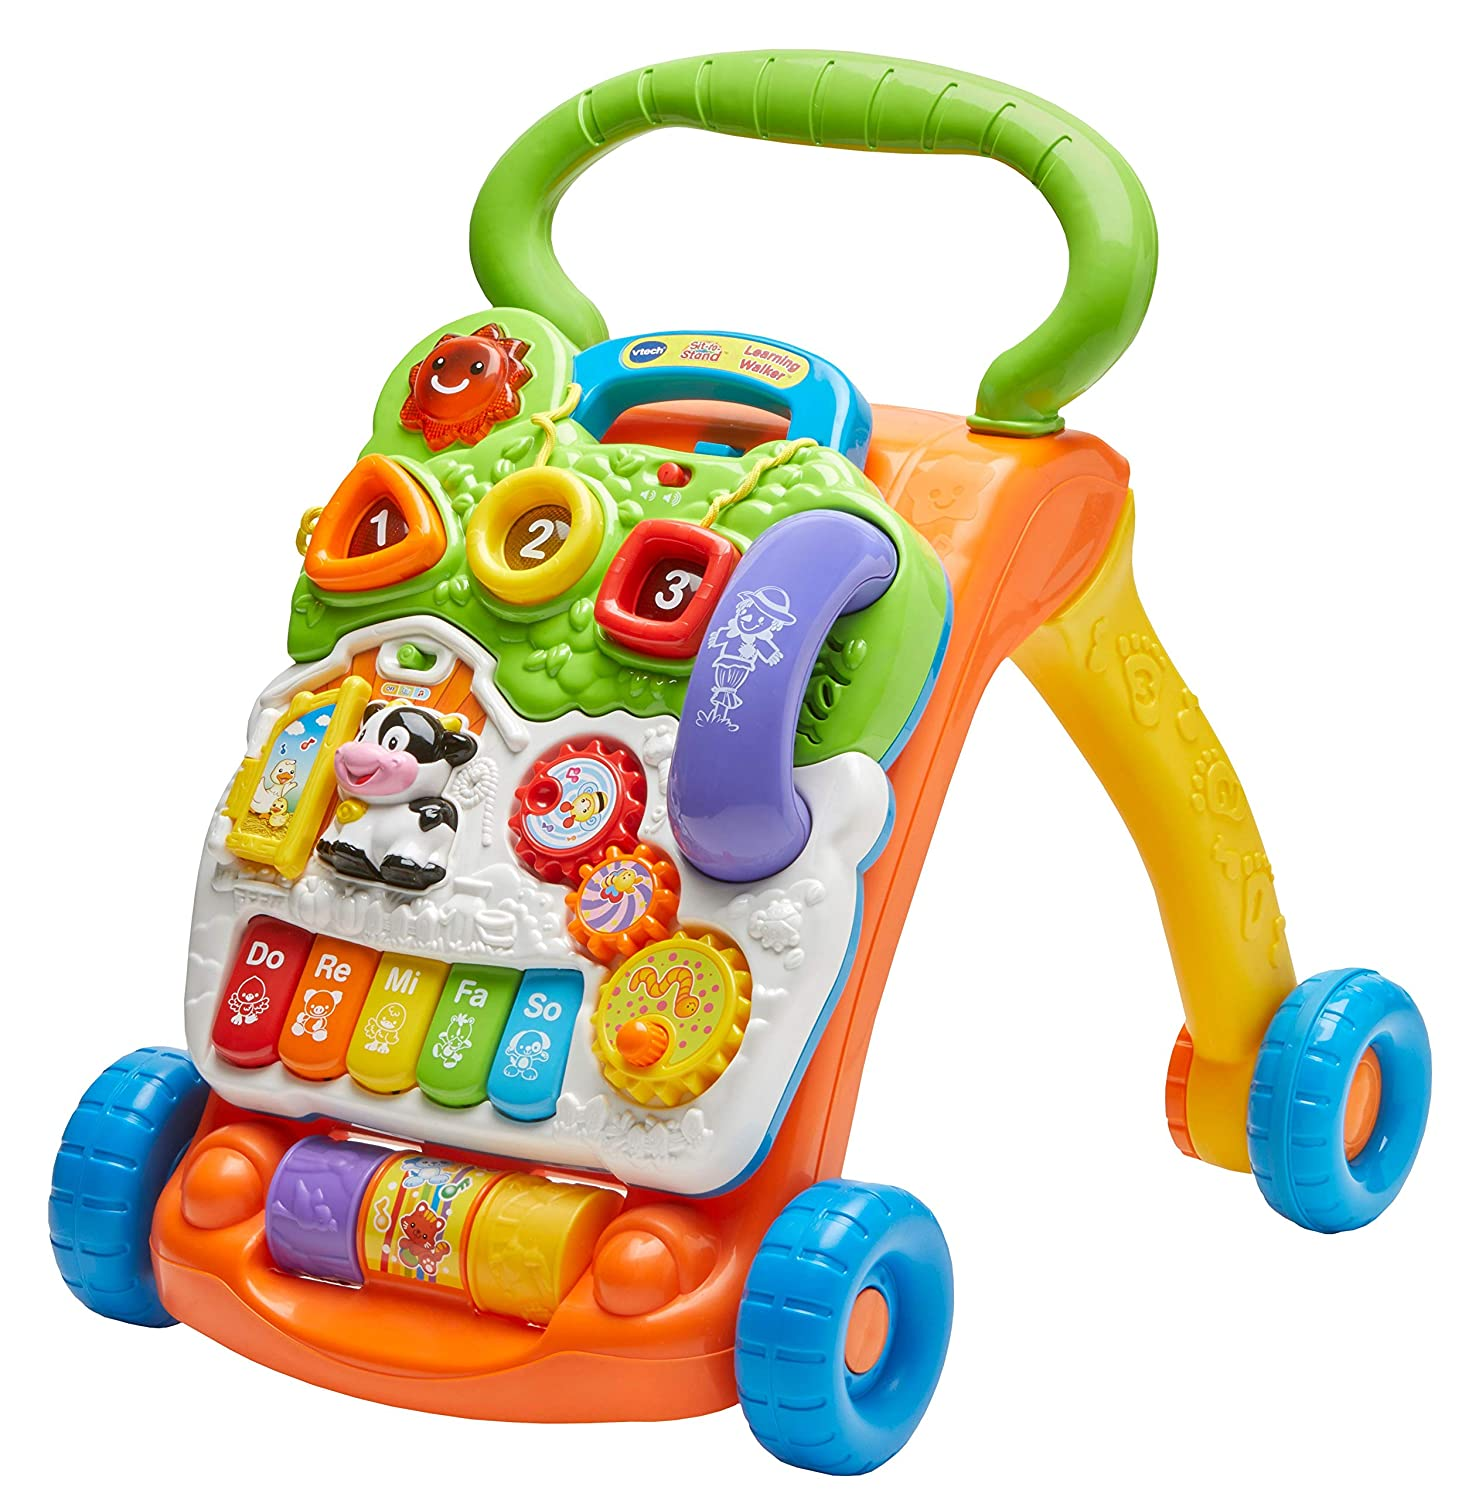 Top 15 Best Walking Toys for 1 Year Olds Mothers Should Consider 1